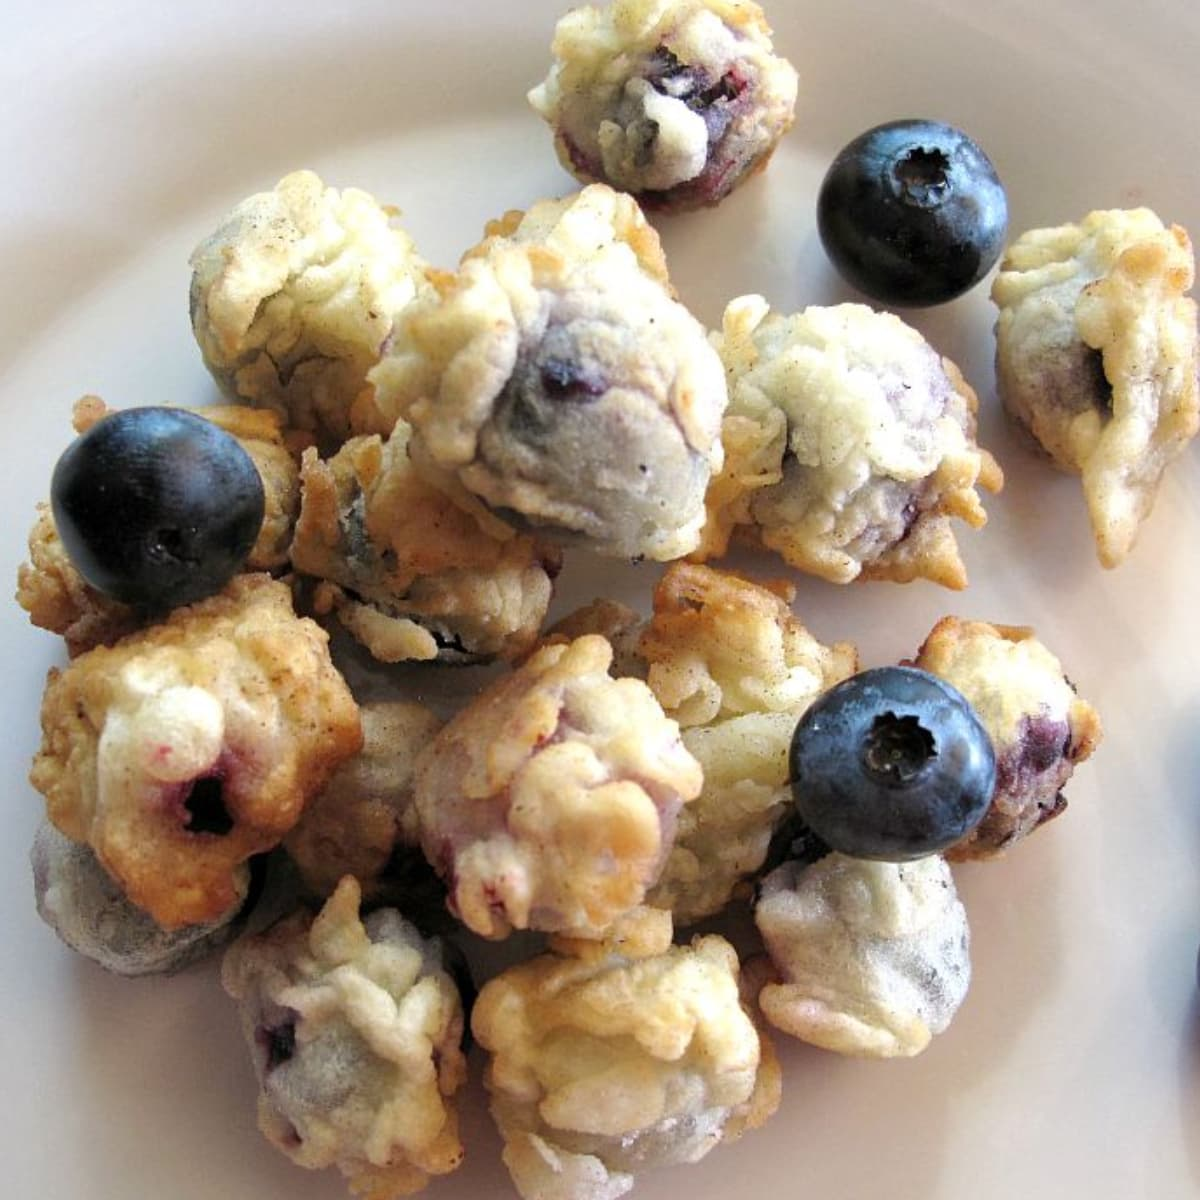 Deep fried blueberries with a few fresh blueberries